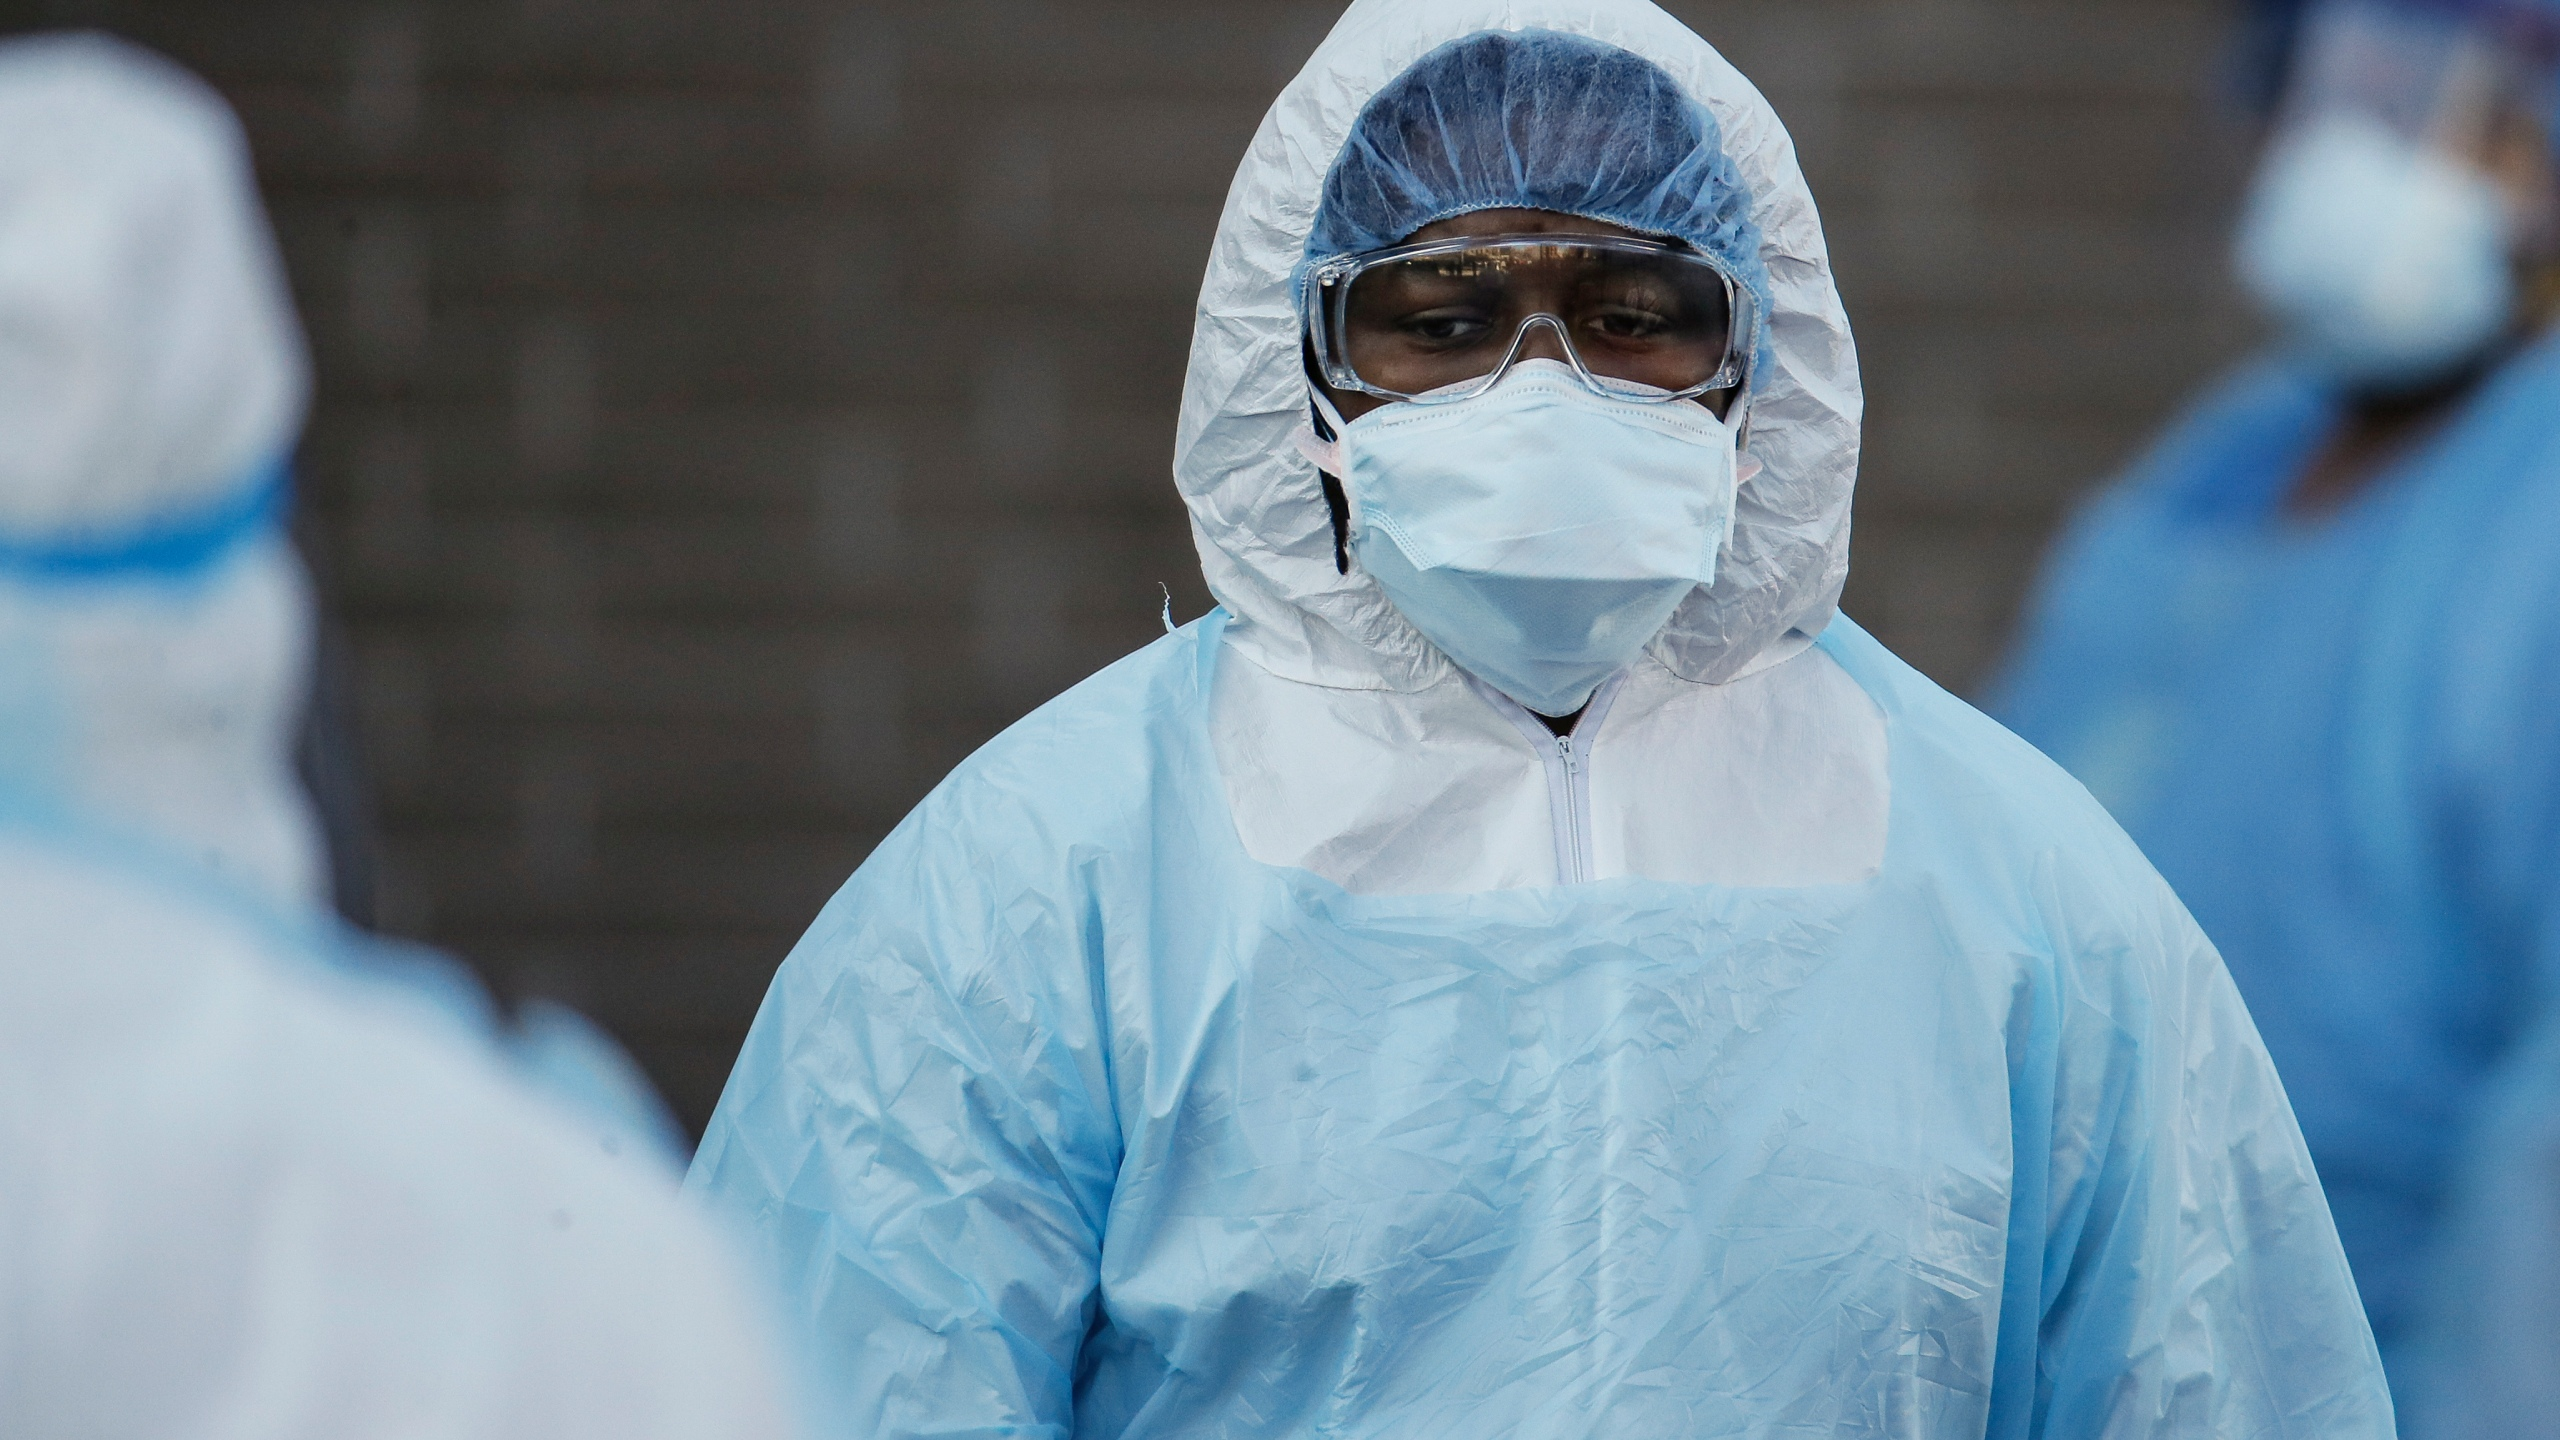 A medical worker wearing personal protective equipment pauses after wheeling a body to a refrigerated trailer serving as a makeshift morgue at Wyckoff Heights Medical Center, Monday, April 6, 2020, in the Brooklyn borough of New York. The new coronavirus causes mild or moderate symptoms for most people, but for some, especially older adults and people with existing health problems, it can cause more severe illness or death. (AP Photo/John Minchillo)